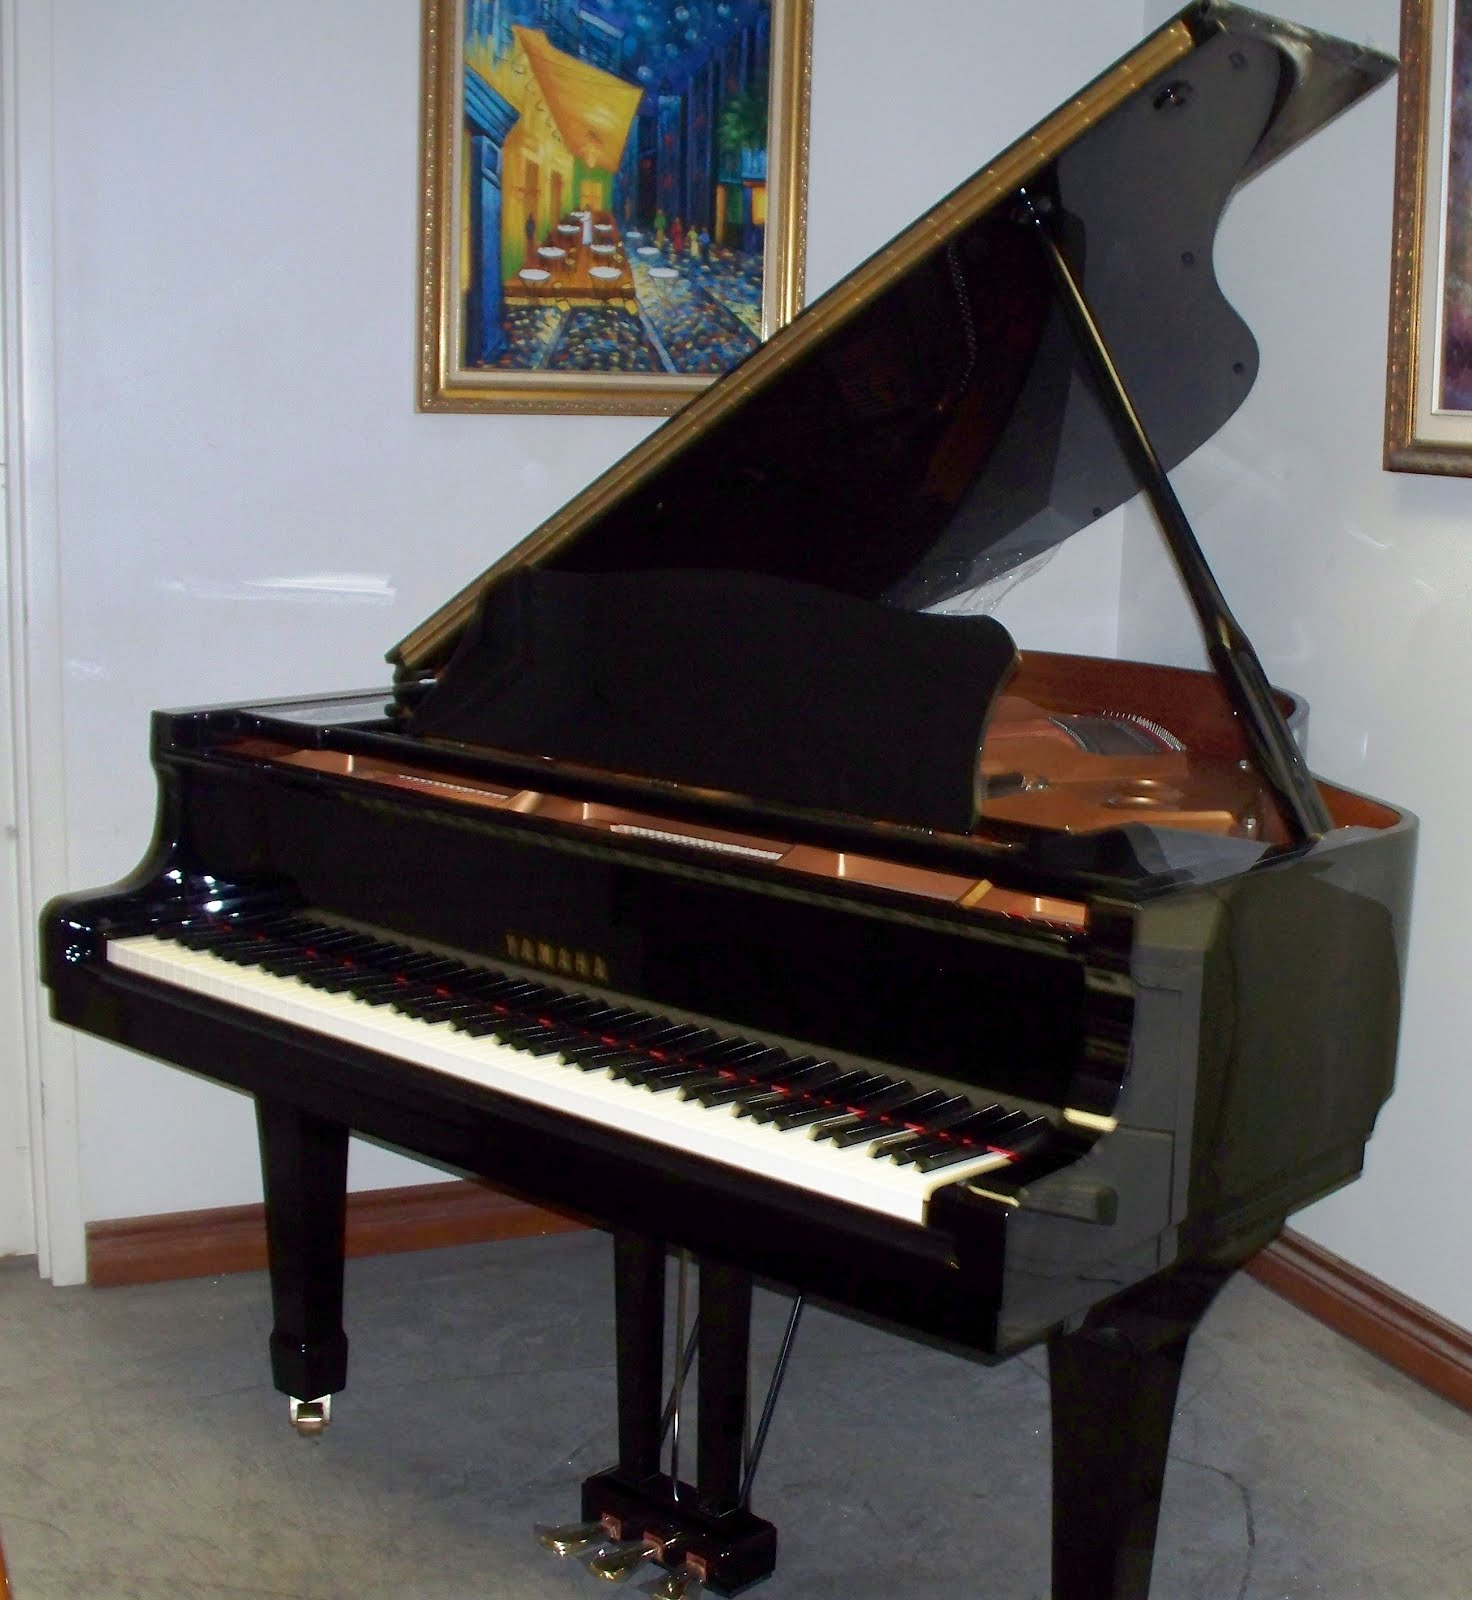 used piano sale in toronto area yamaha c2 grand piano 5 8